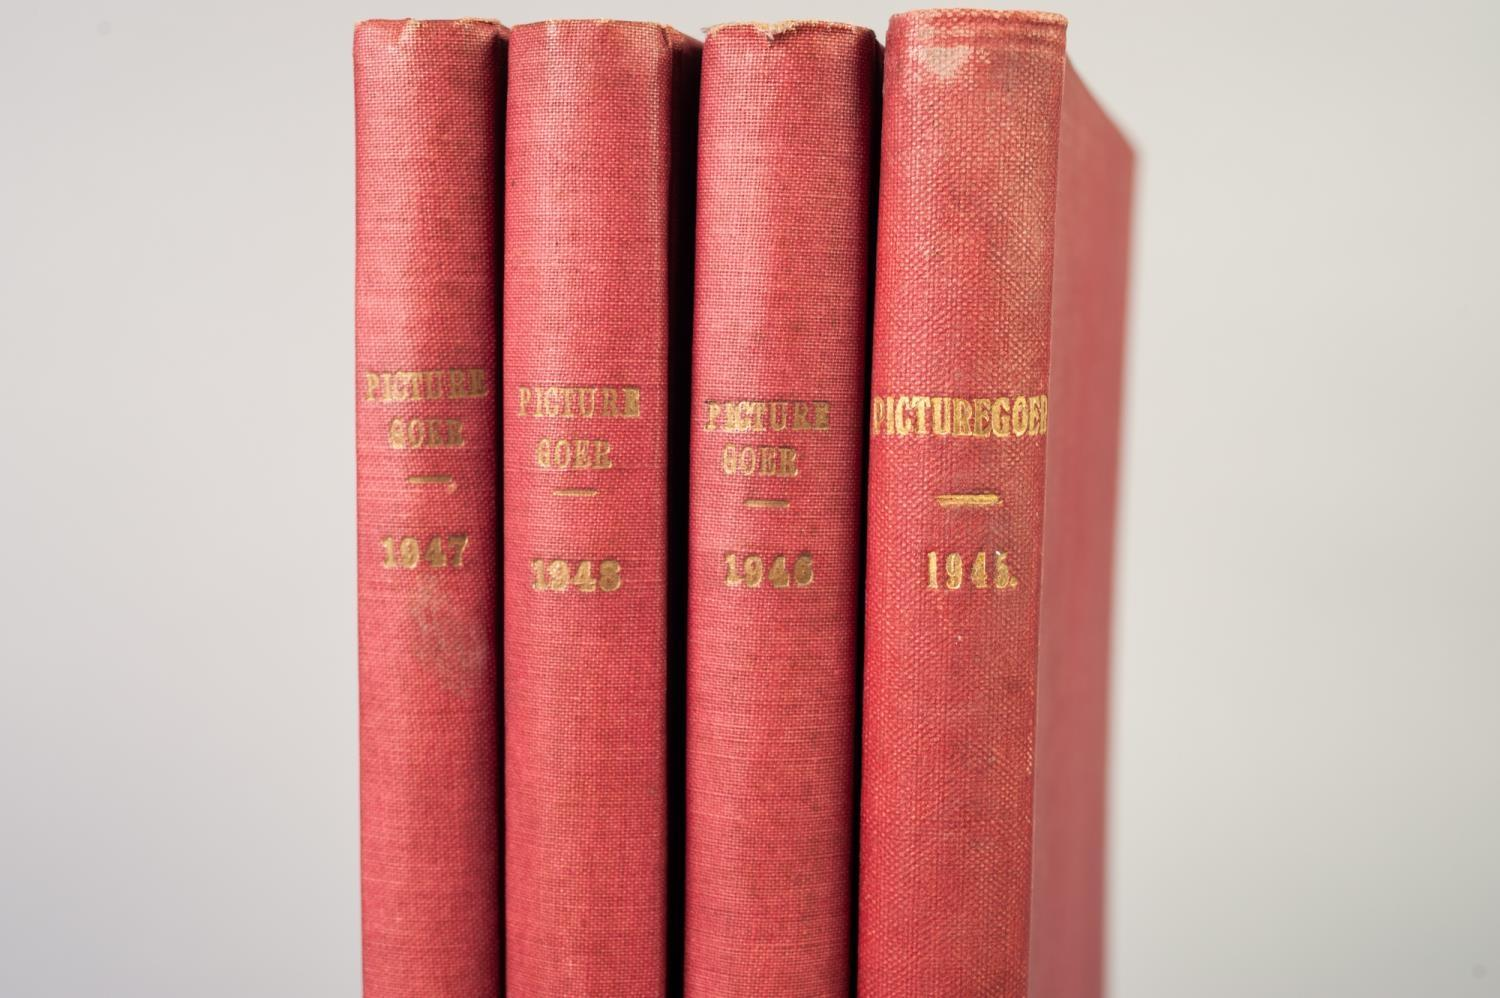 SMALL SELECTION OF PICTUREGOER ANNUALS, 1940s, bound in red cloth, 1945, 1946, 1947, 1948, various - Image 2 of 3